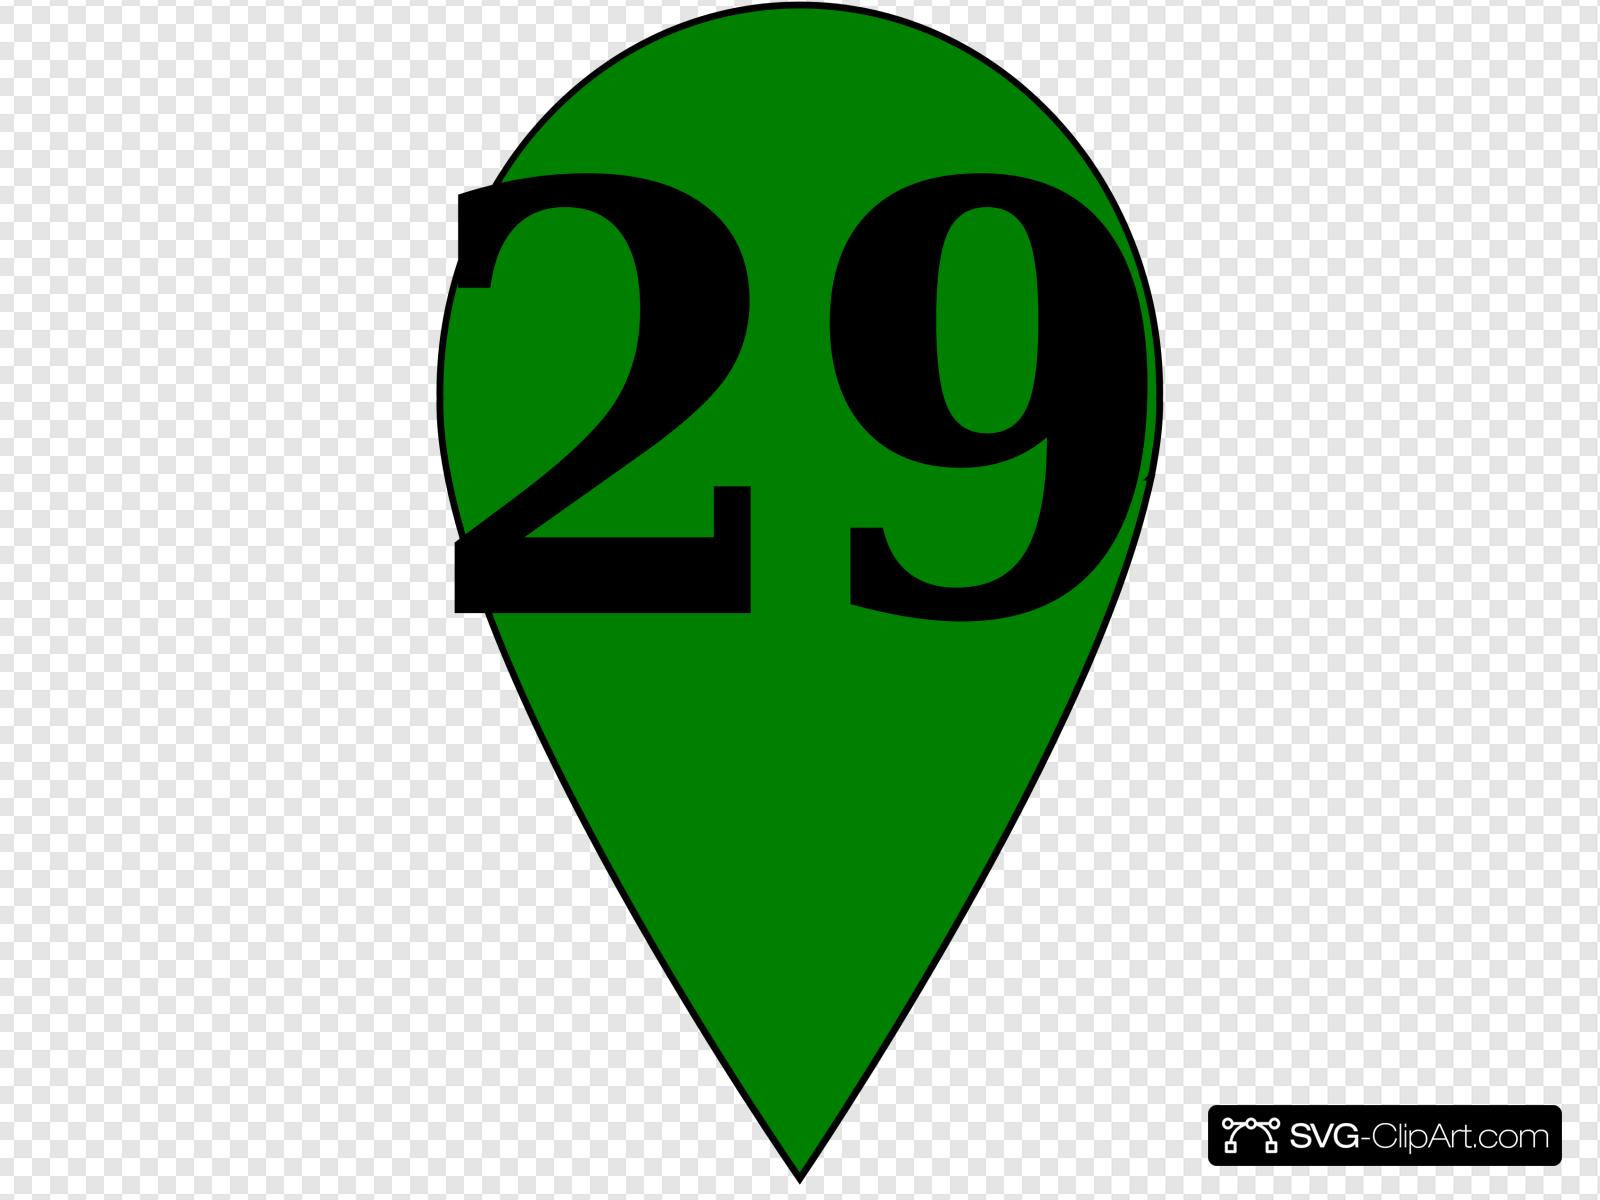 Green 29 Clip art, Icon and SVG.